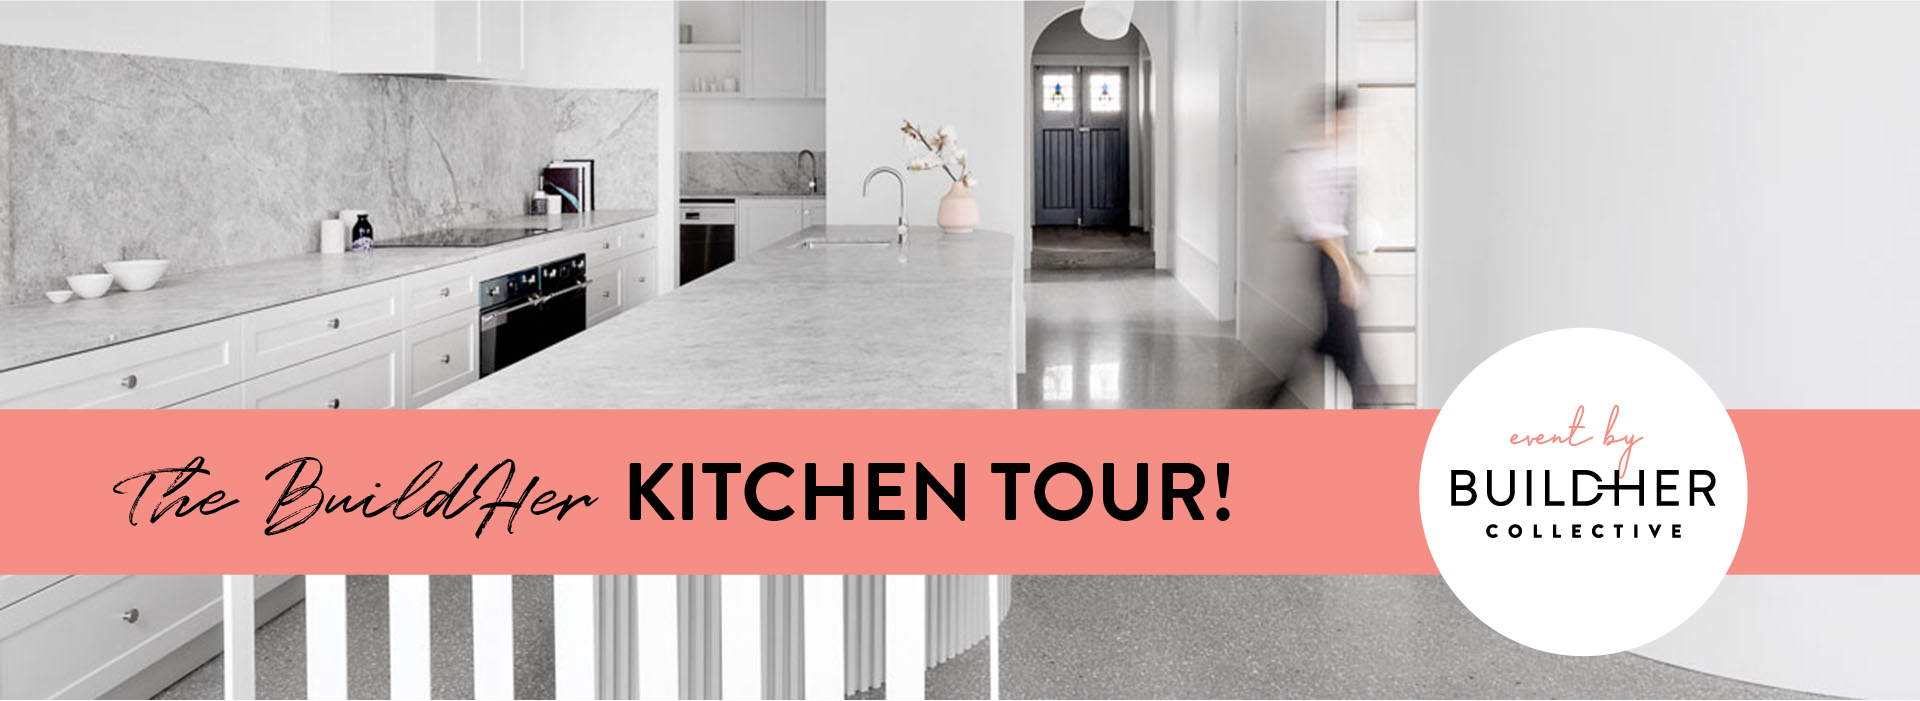 Kitchen Tour - Banner